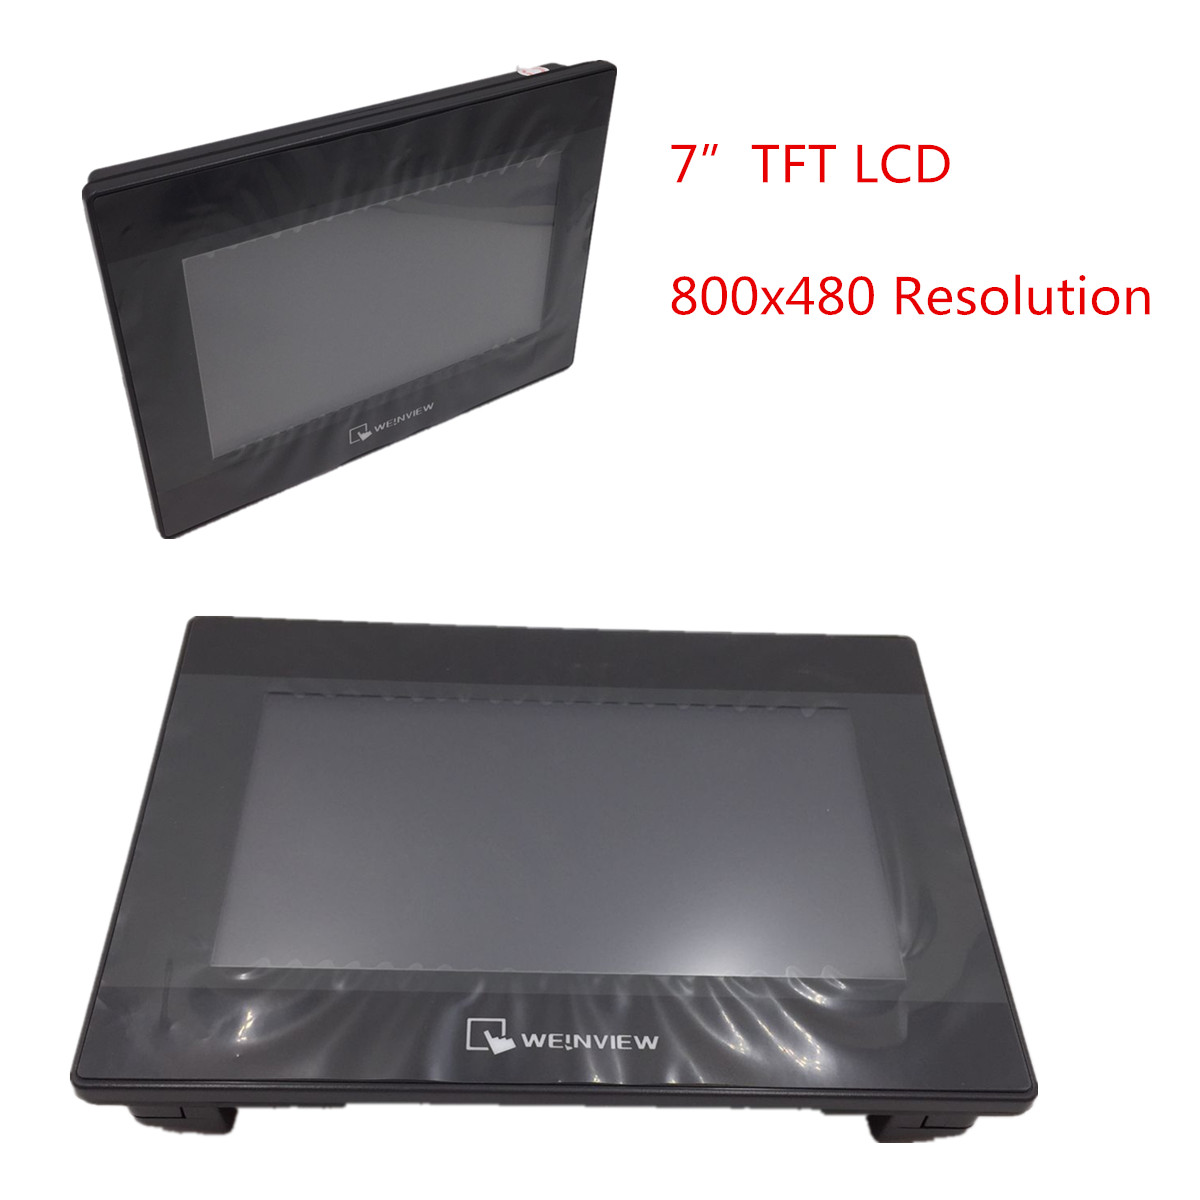 7 inch HMI Touch Screen Ethernet USB Host Weinview MT8071iE 800x480 TFT Display with Software New in Box